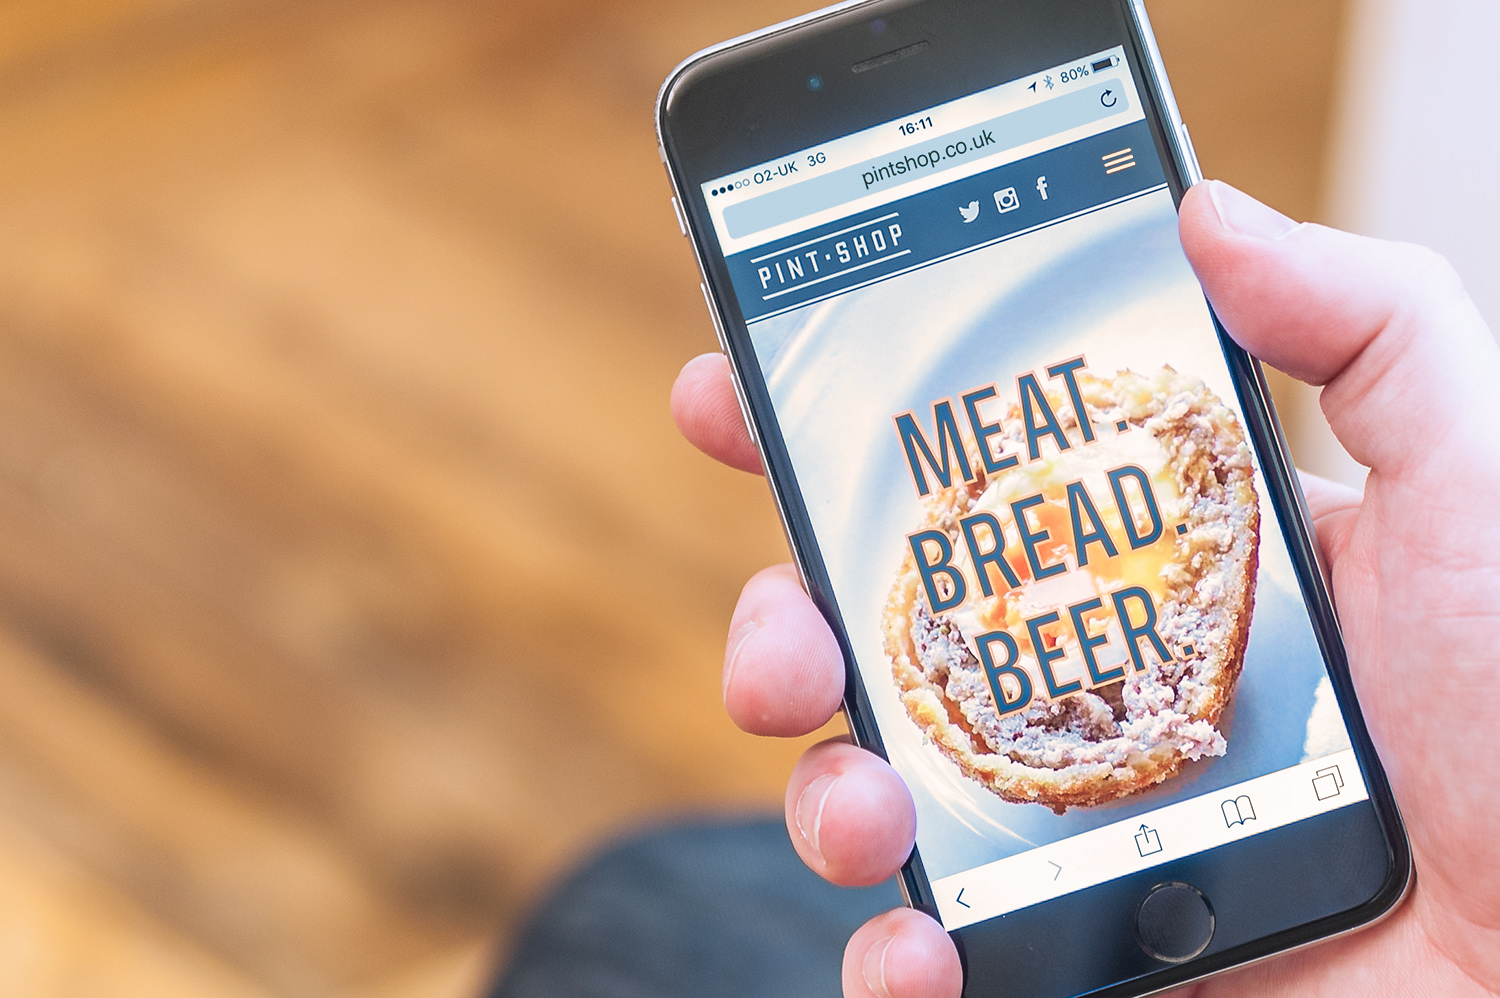 An iPhone being held displaying the Pint Shop mobile website, designed by SAINT Design.